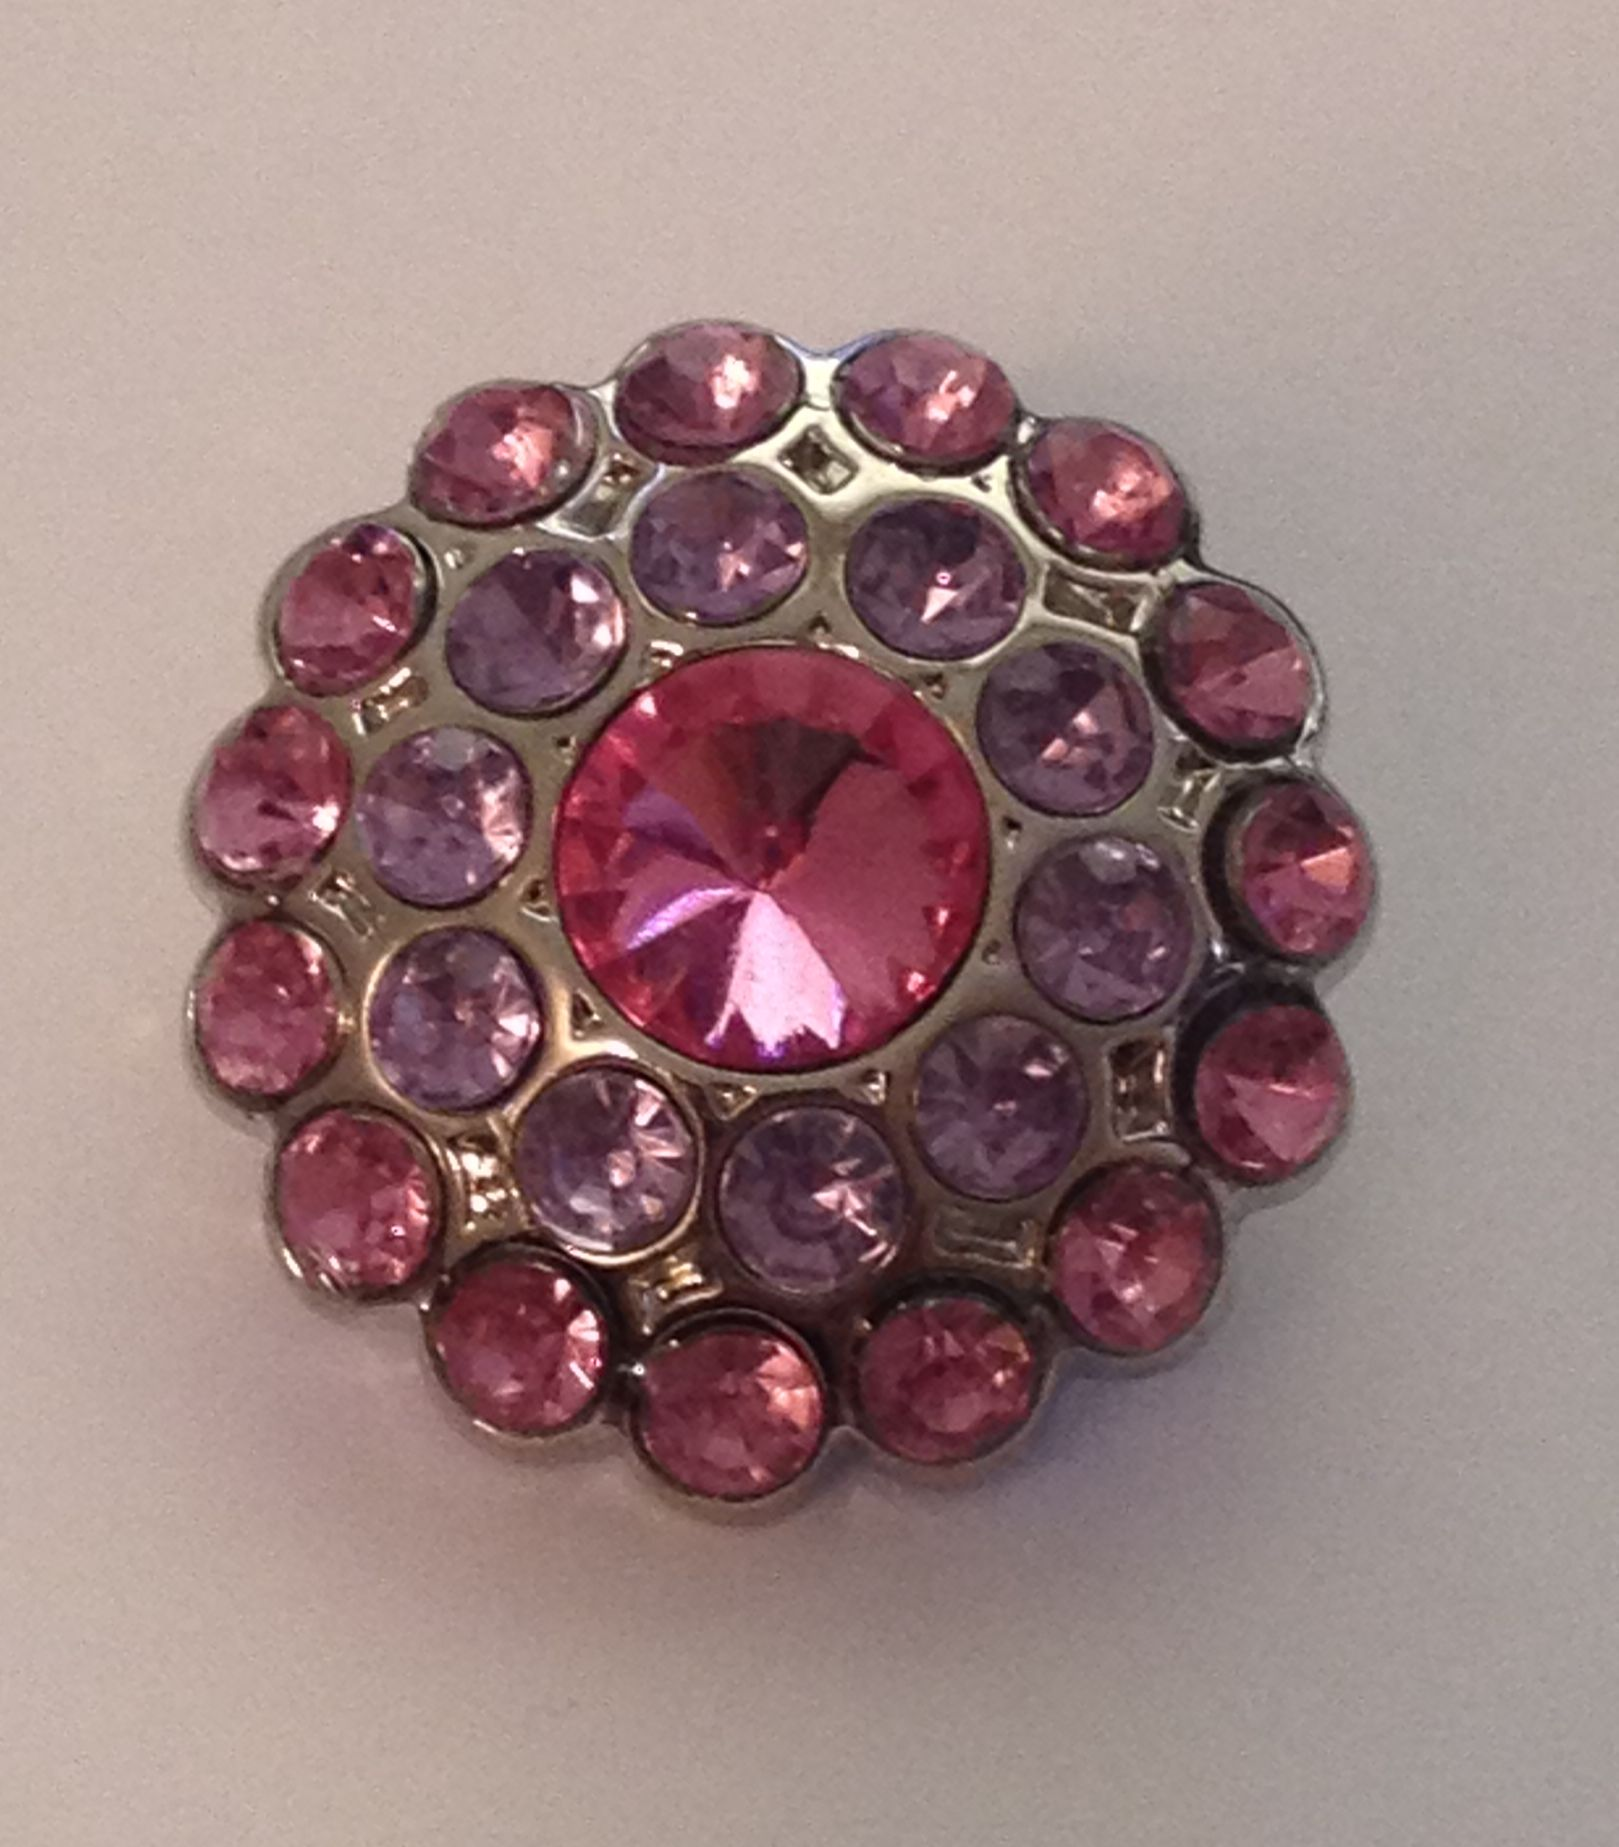 Cluster Blingy Button - Pink and Lavender - 1 piece